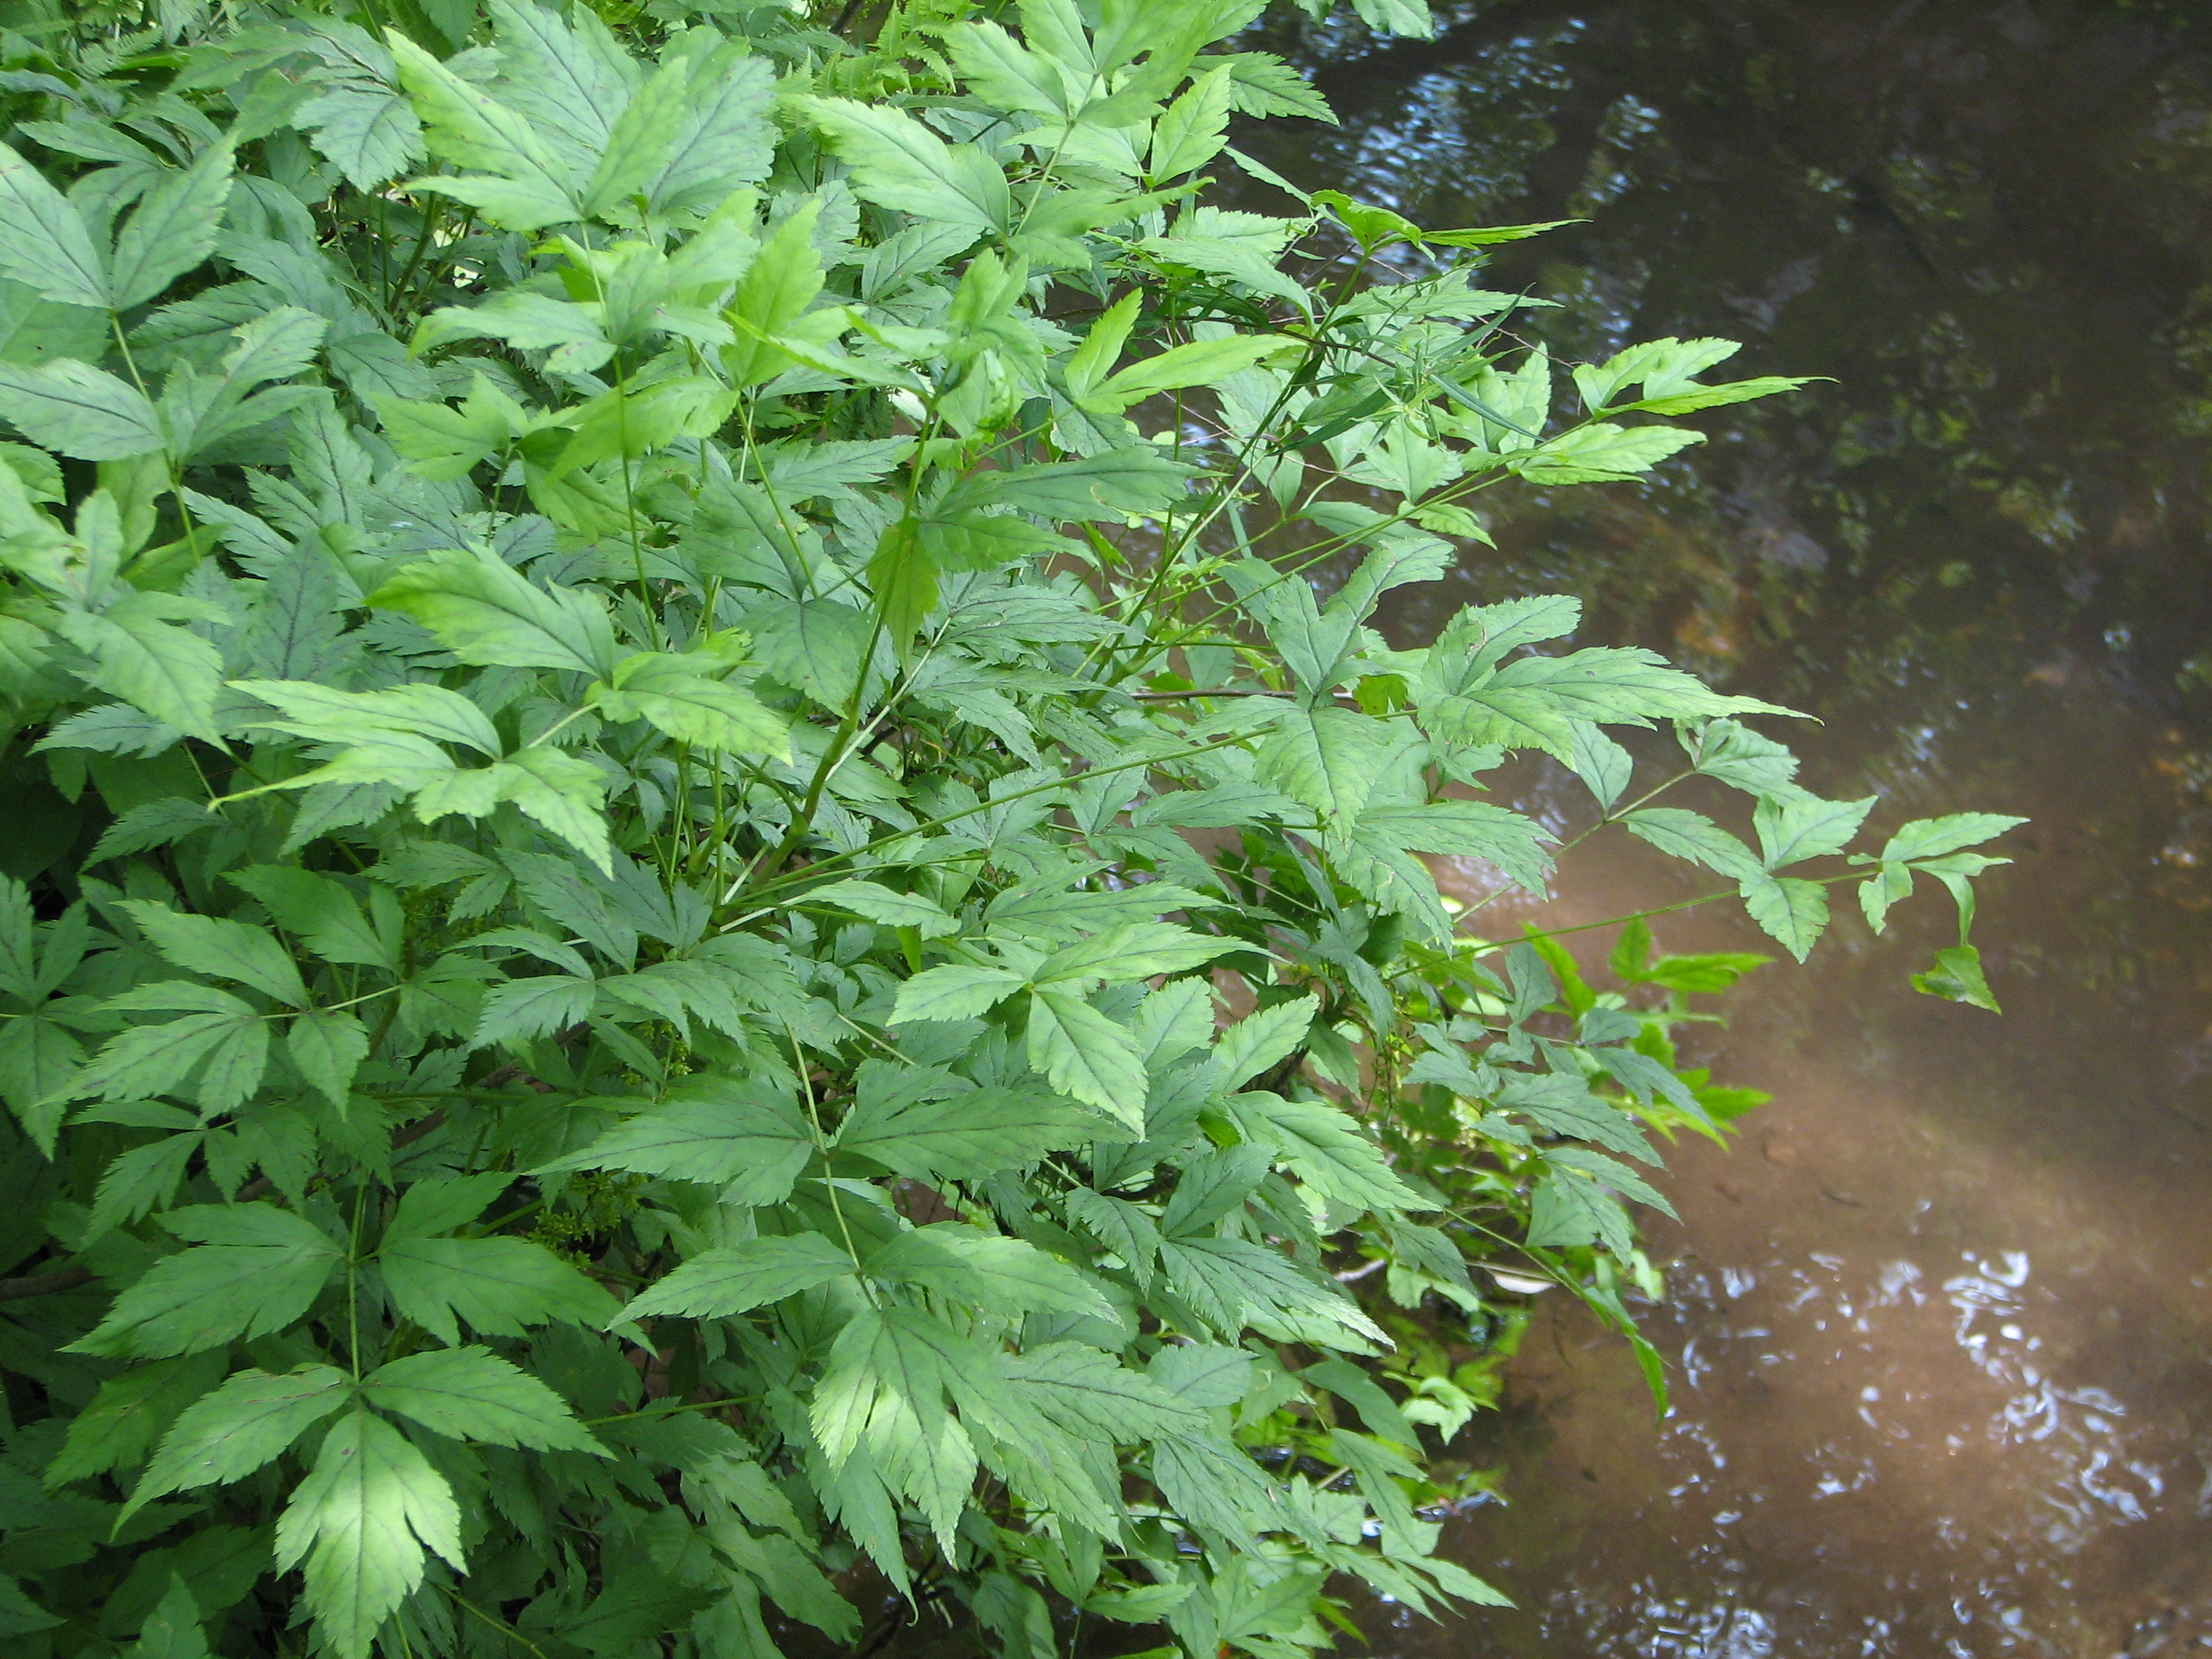 Yellowroot growing next to a stream